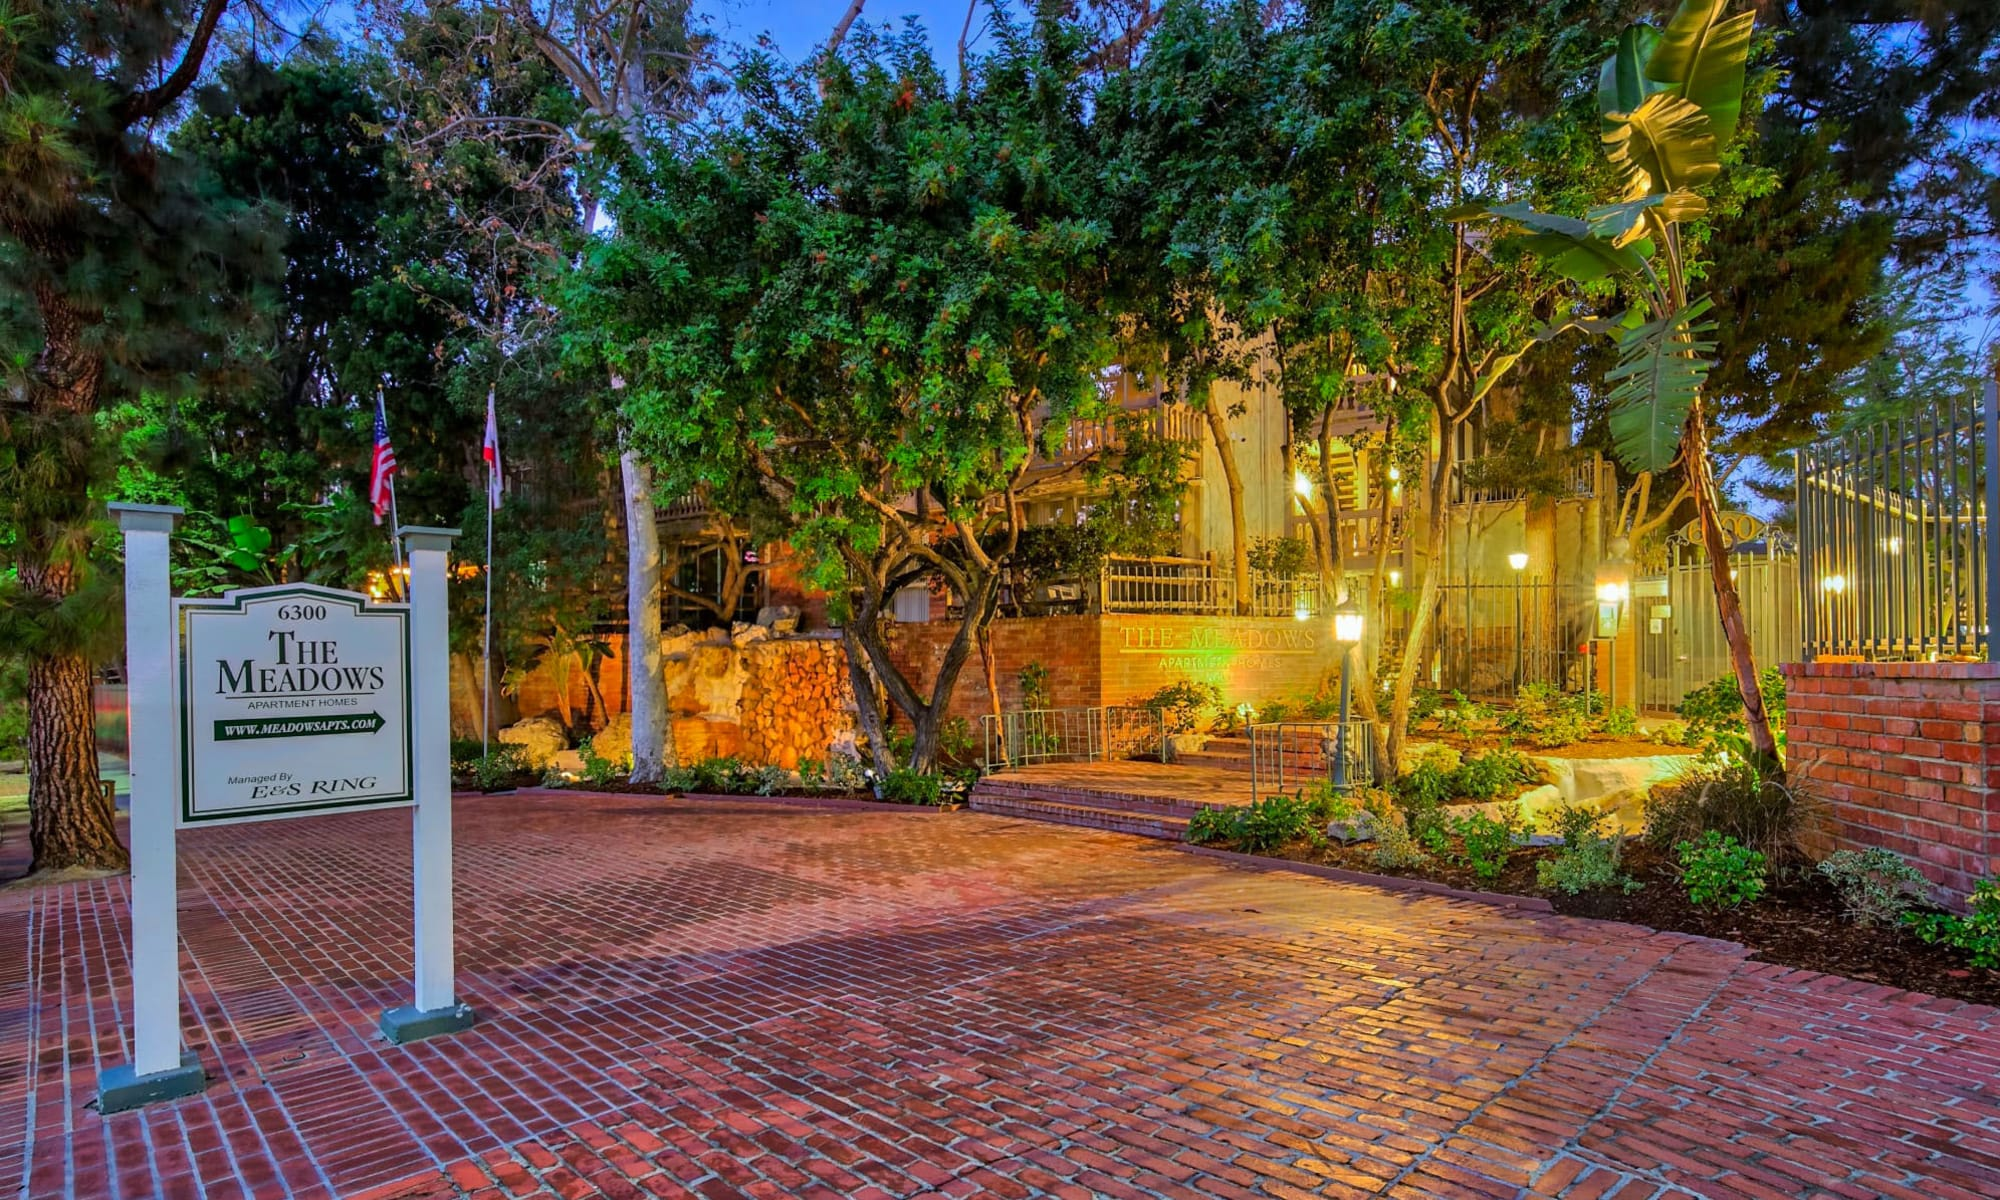 Beautiful well-lit brick walkway at dusk at The Meadows in Culver City, California